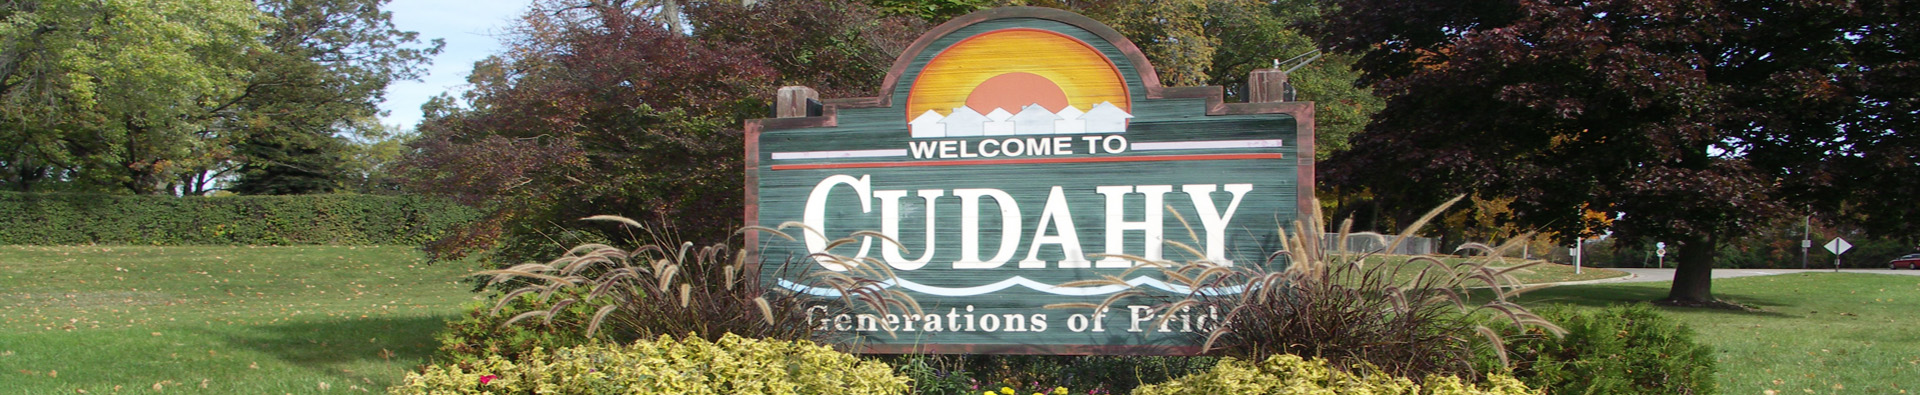 welcome to Cudahy sign